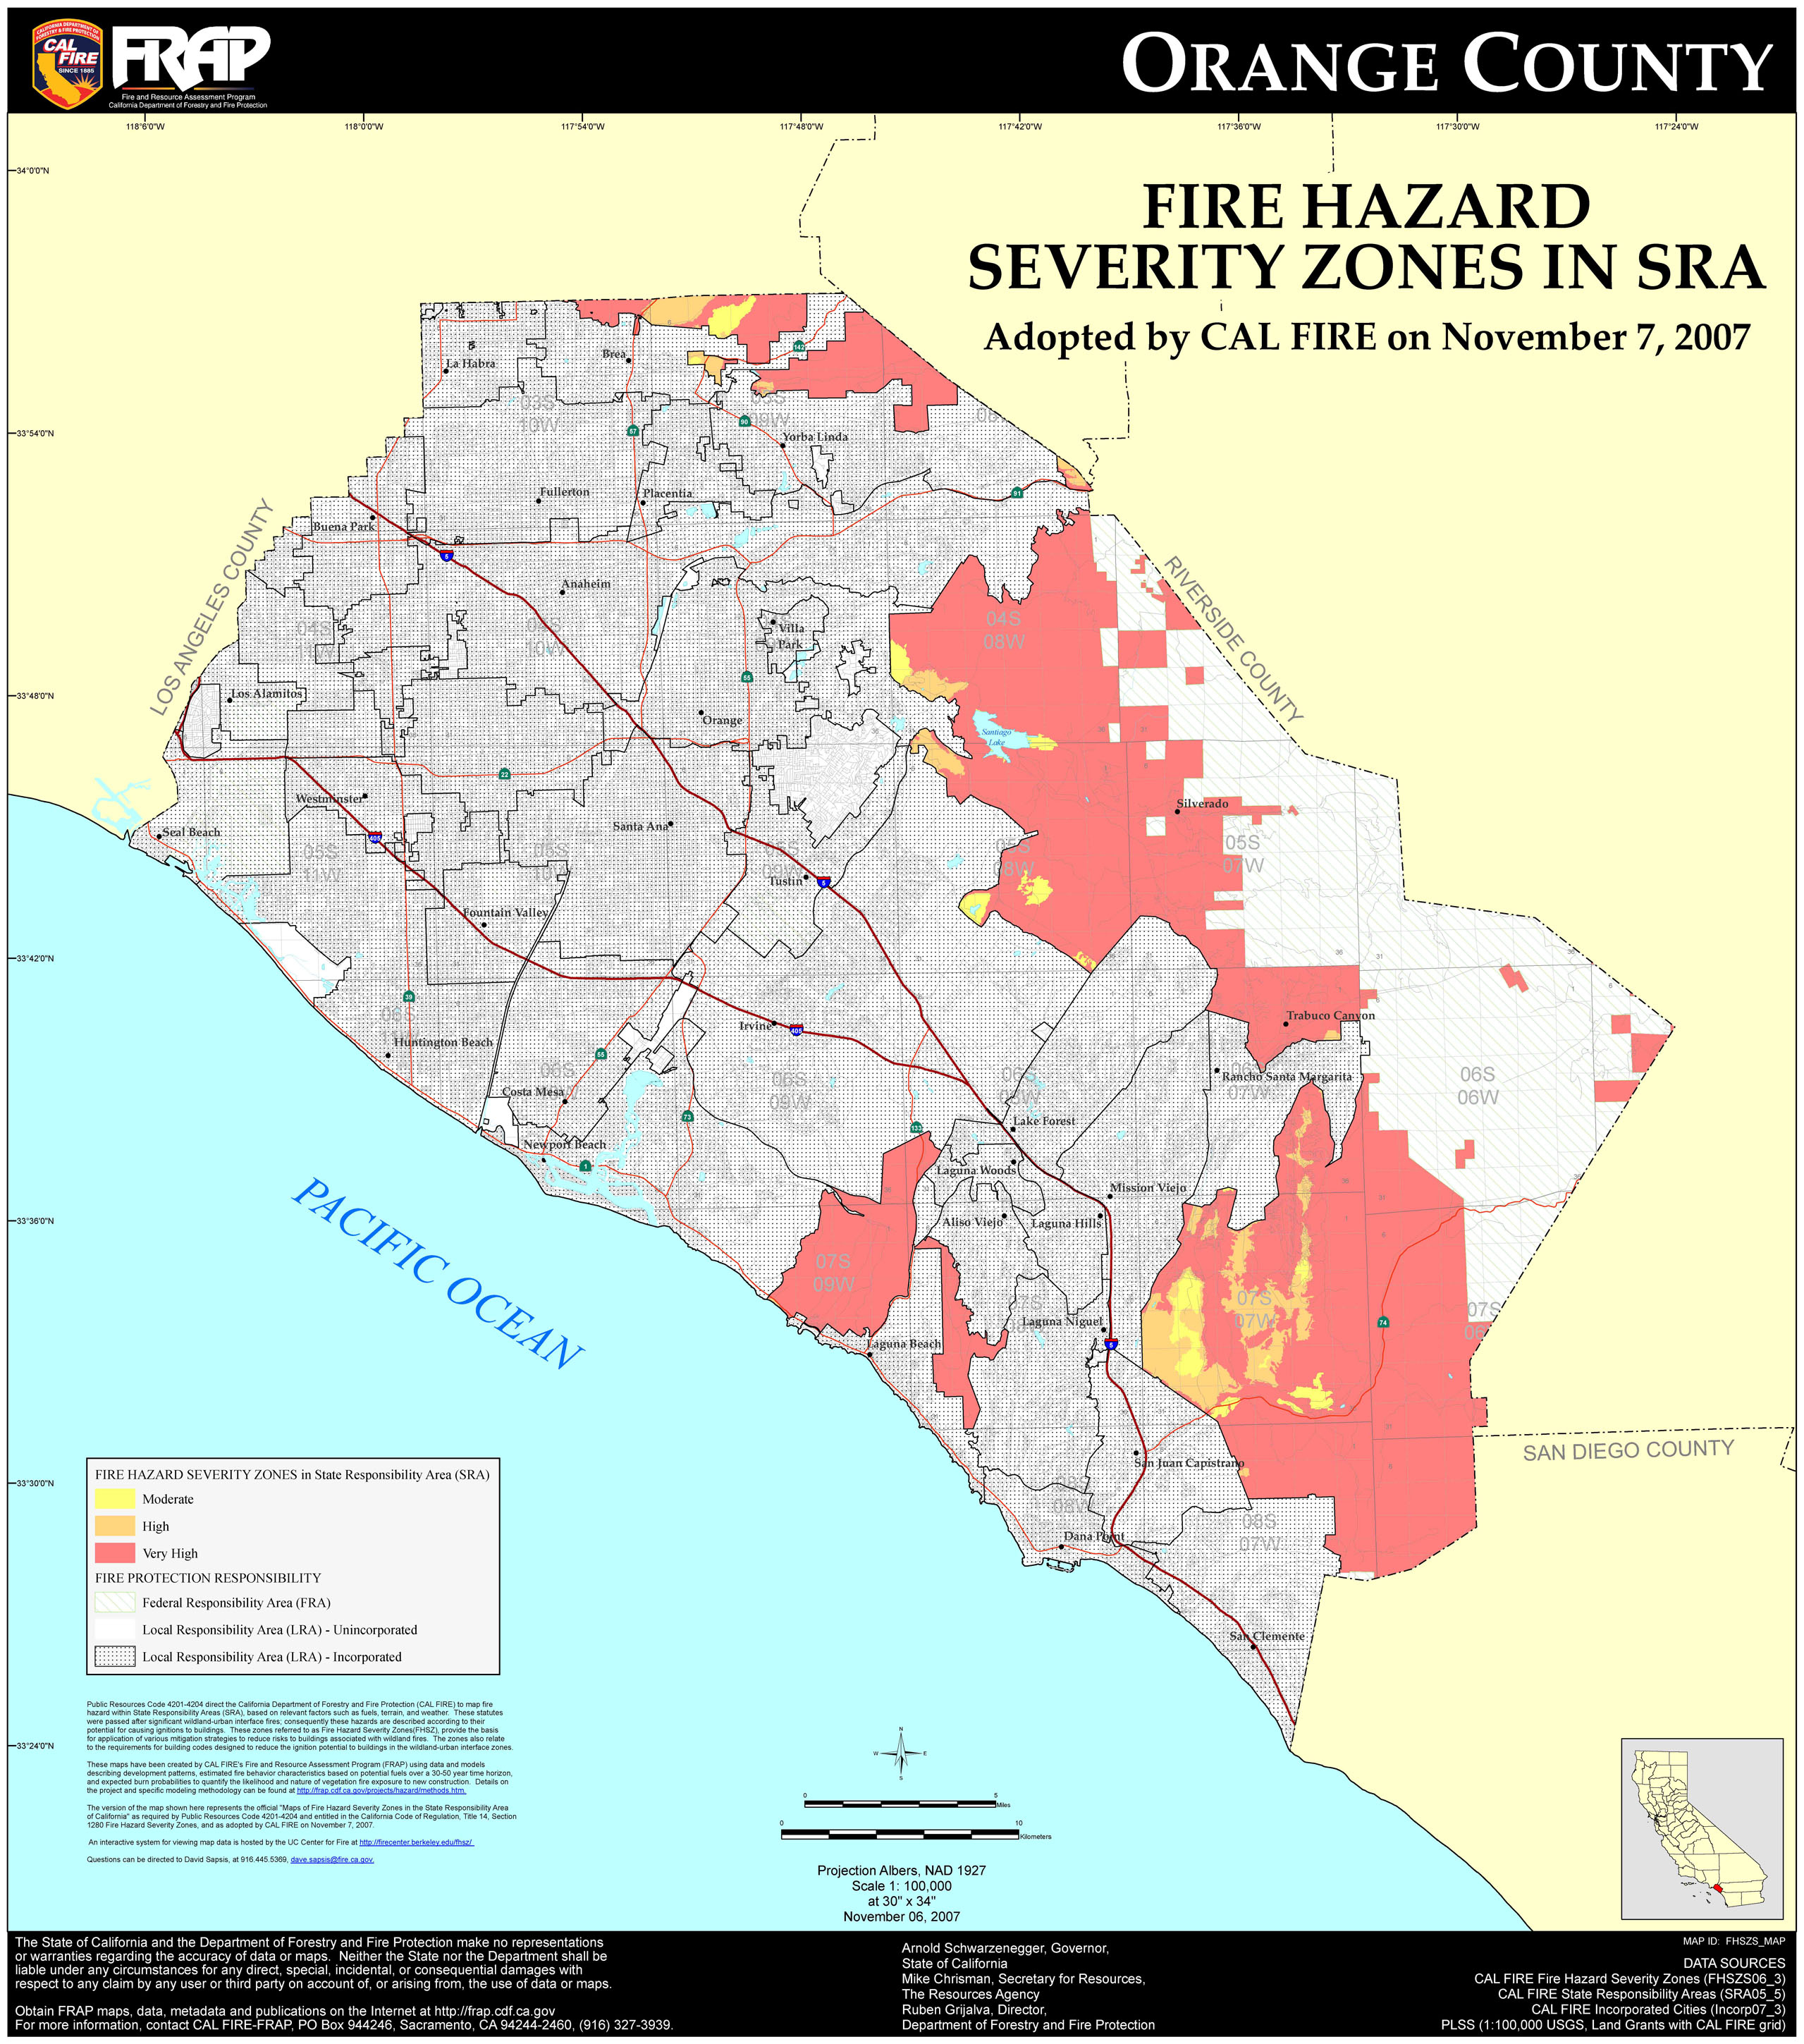 Fhszs Map Maps Of California Map Of Laguna Beach California - Klipy - Laguna Beach California Map